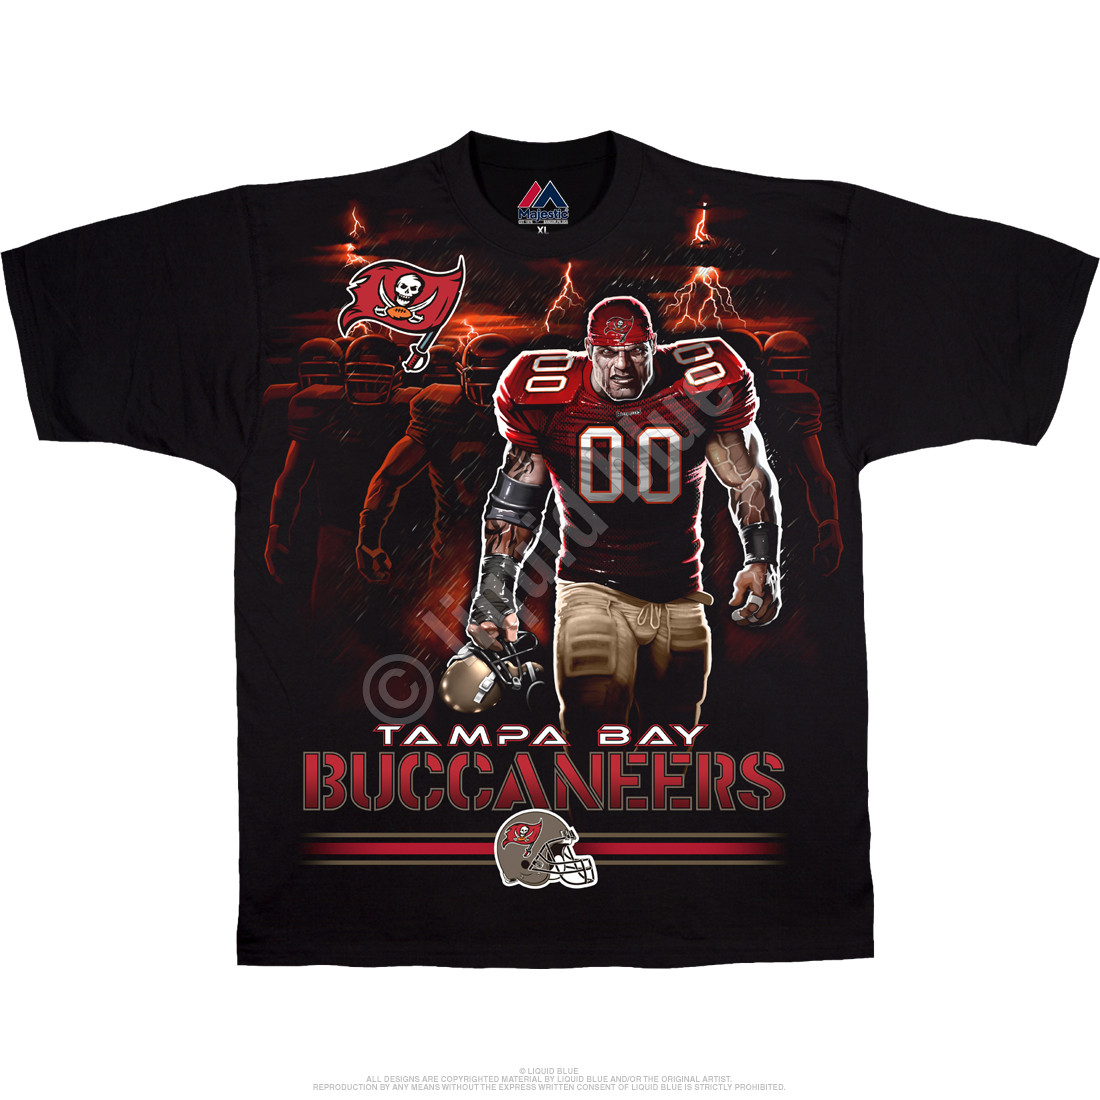 Tampa Bay Buccaneers Tunnel Black T-Shirt